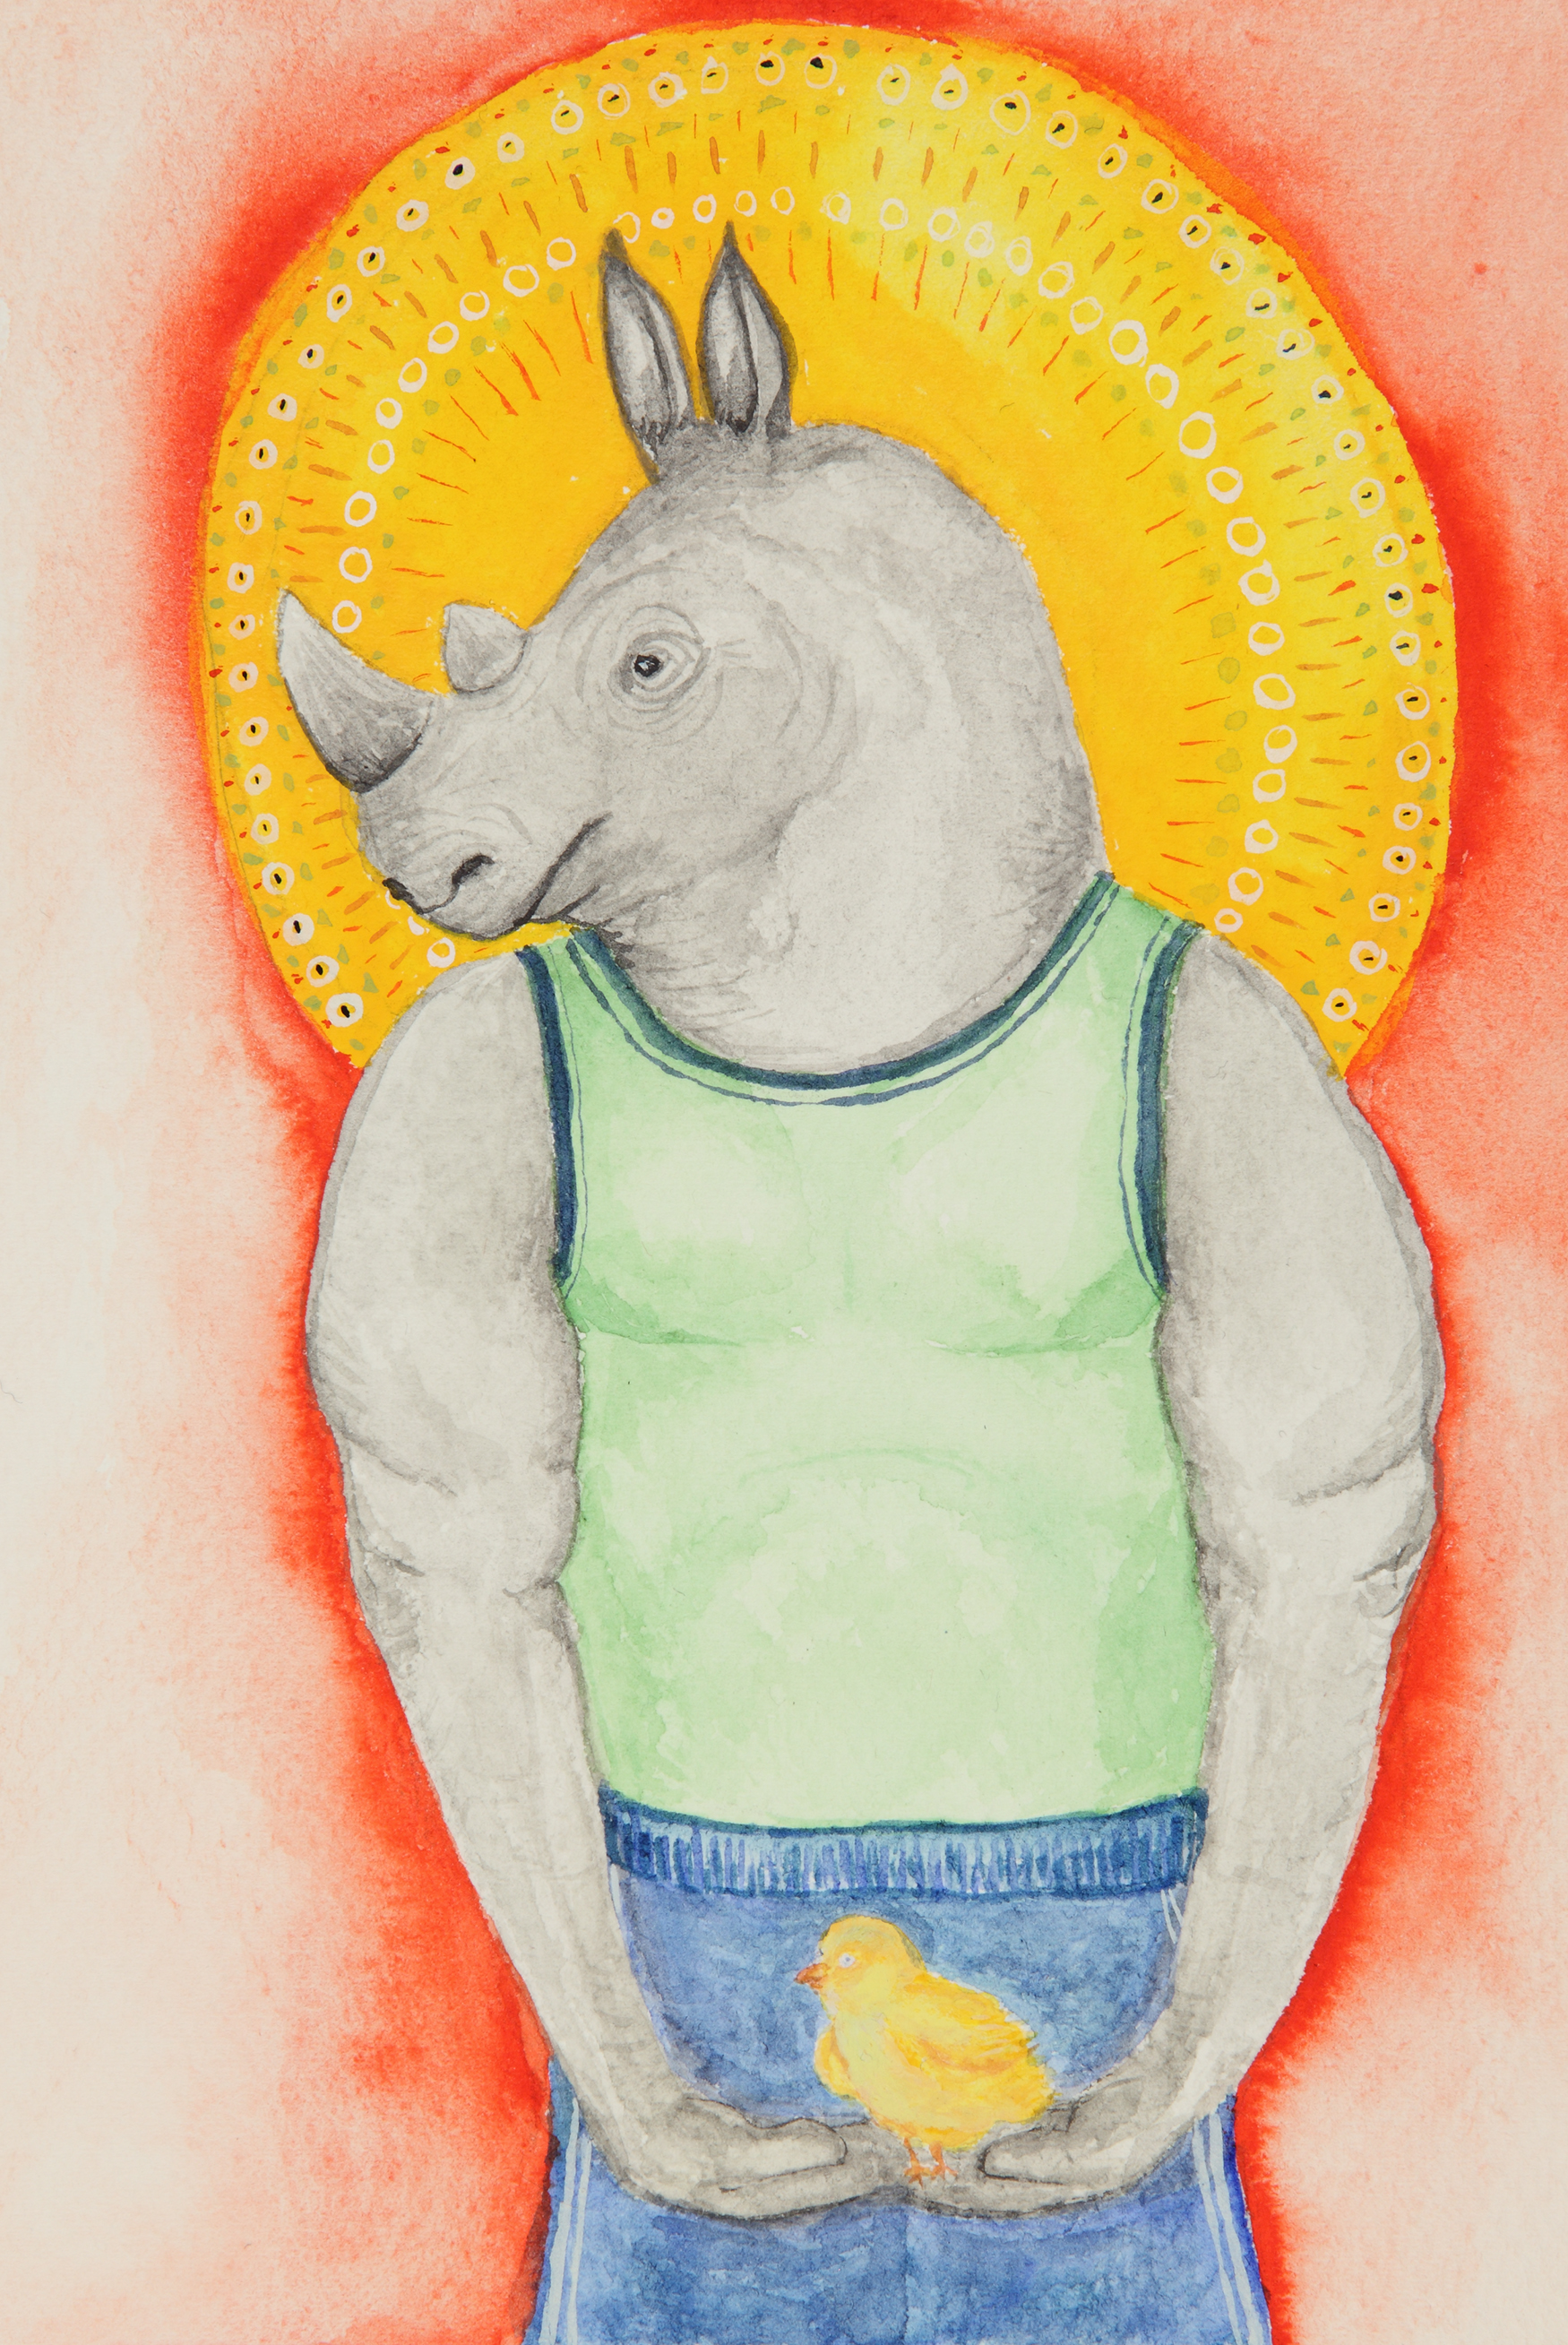 Whimsical watercolor painting of a buff rhino holding a baby chick.